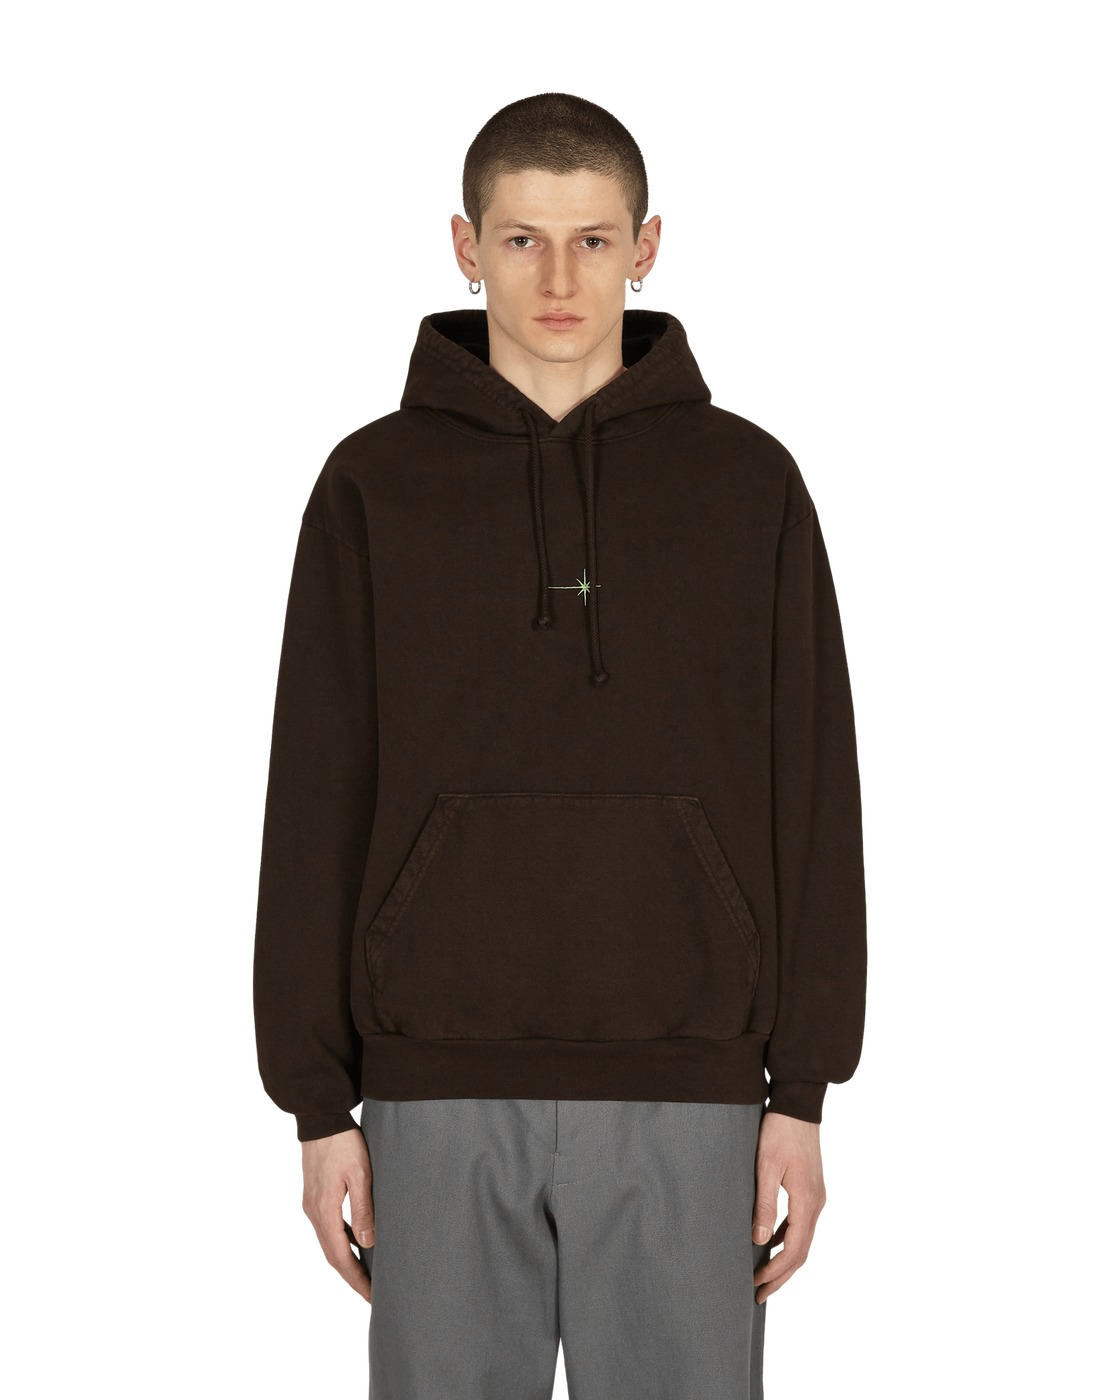 Eden Power Corp Shining Star Recycled Hooded Sweatshirt Brown